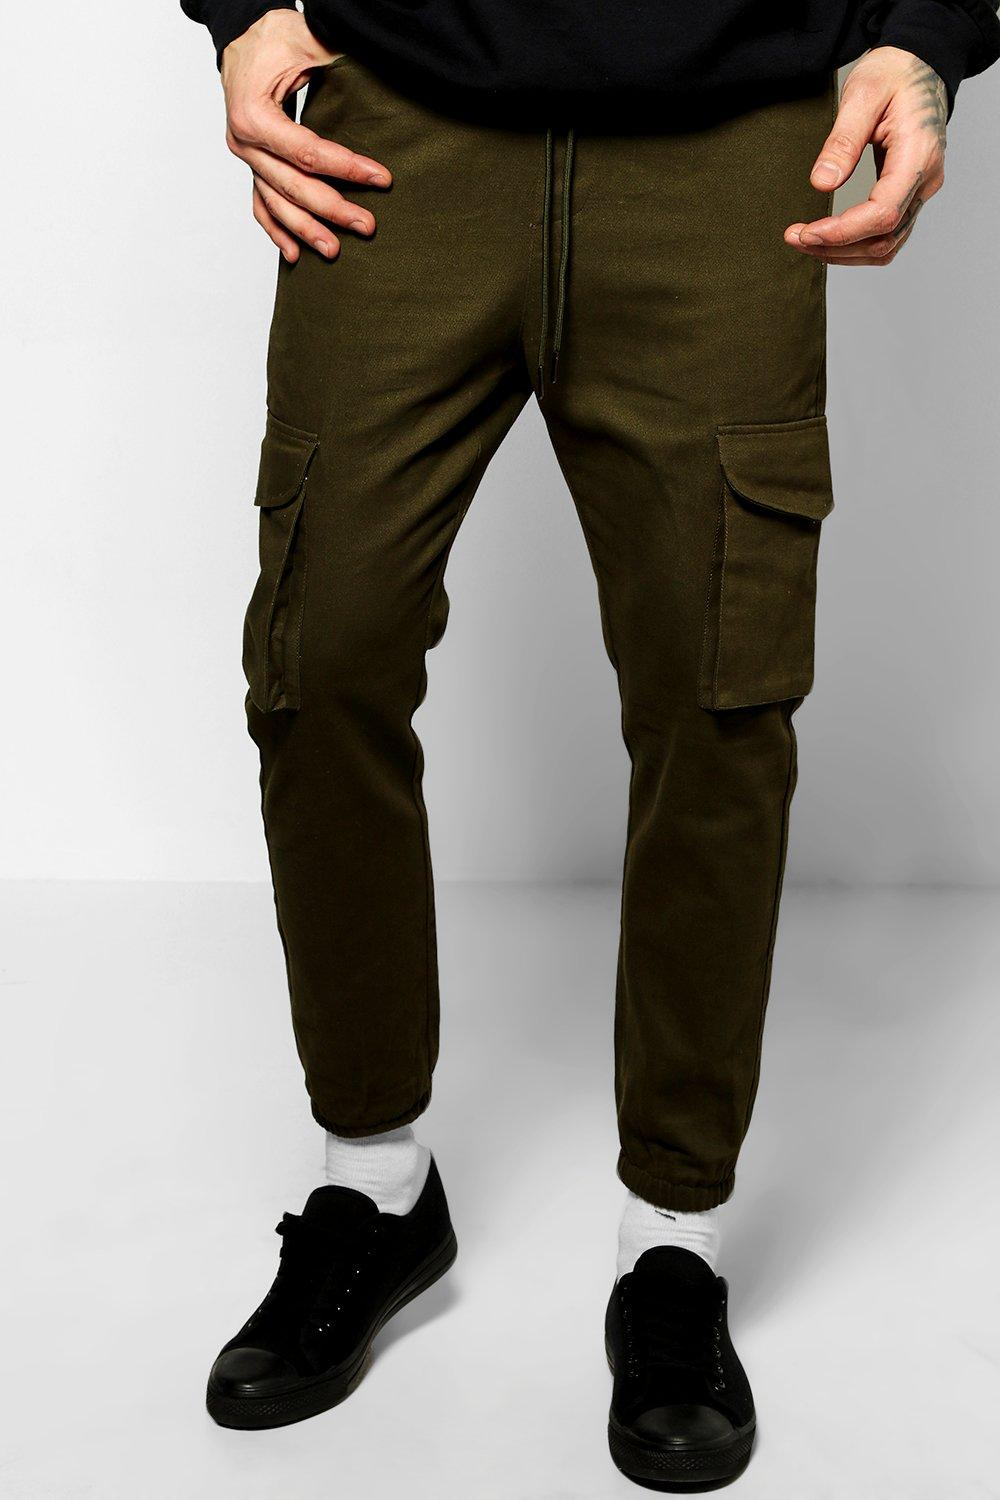 distinctive design outlet promo codes Skinny Fit Utility Joggers Cargo Pants